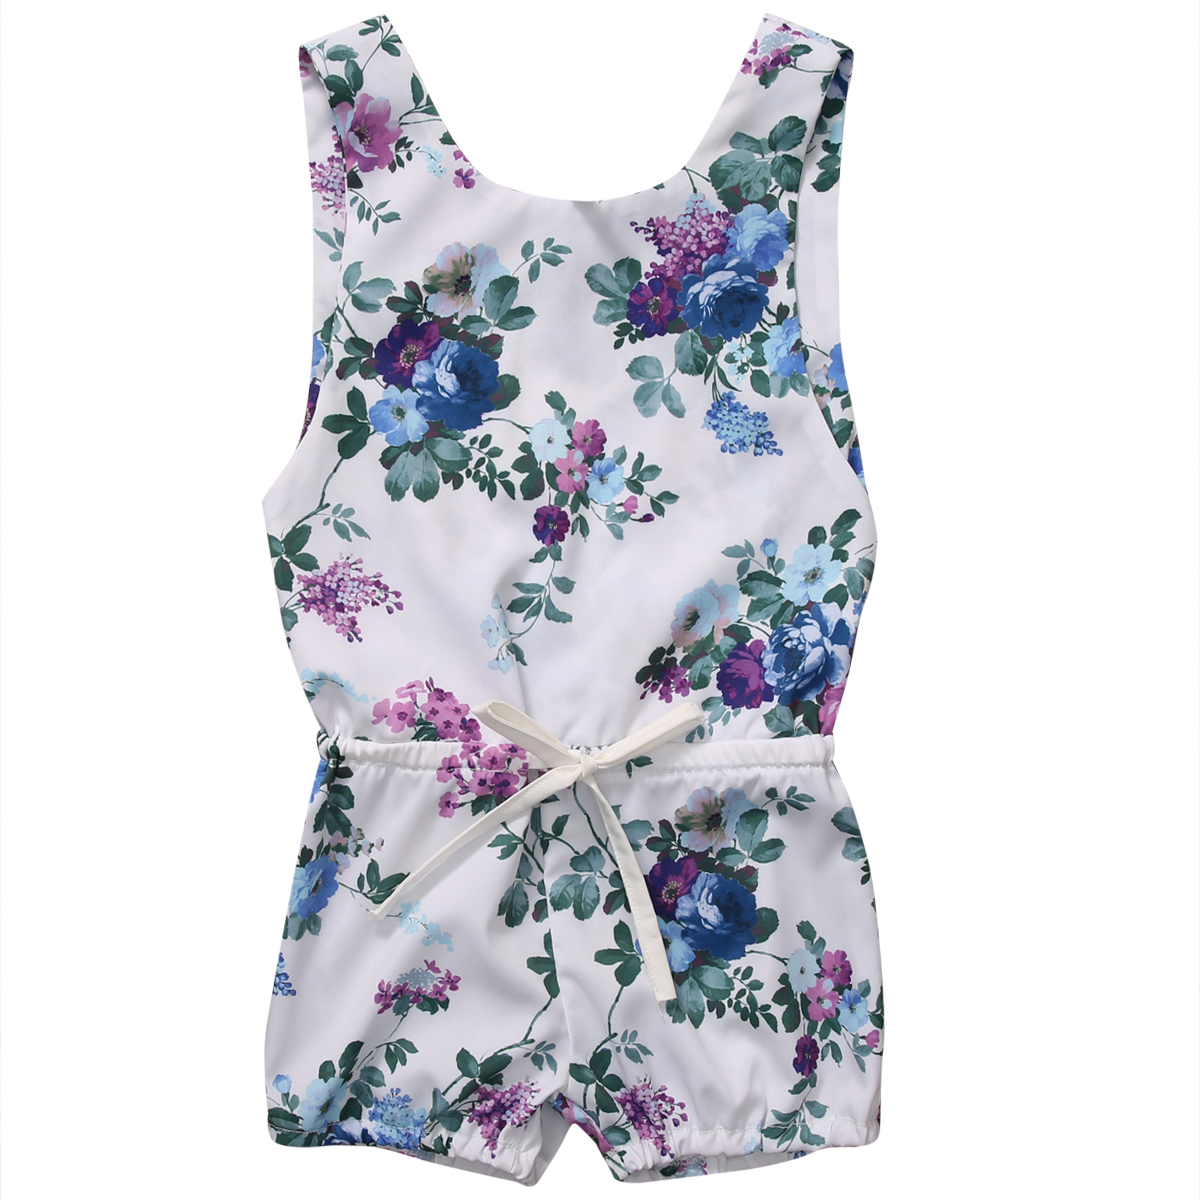 New Style Toddler Infant Baby Girls Clothes Floral Jumper Sleeveless Romper Jumpsuit One-pieces Baby Clothing 6M-4Y